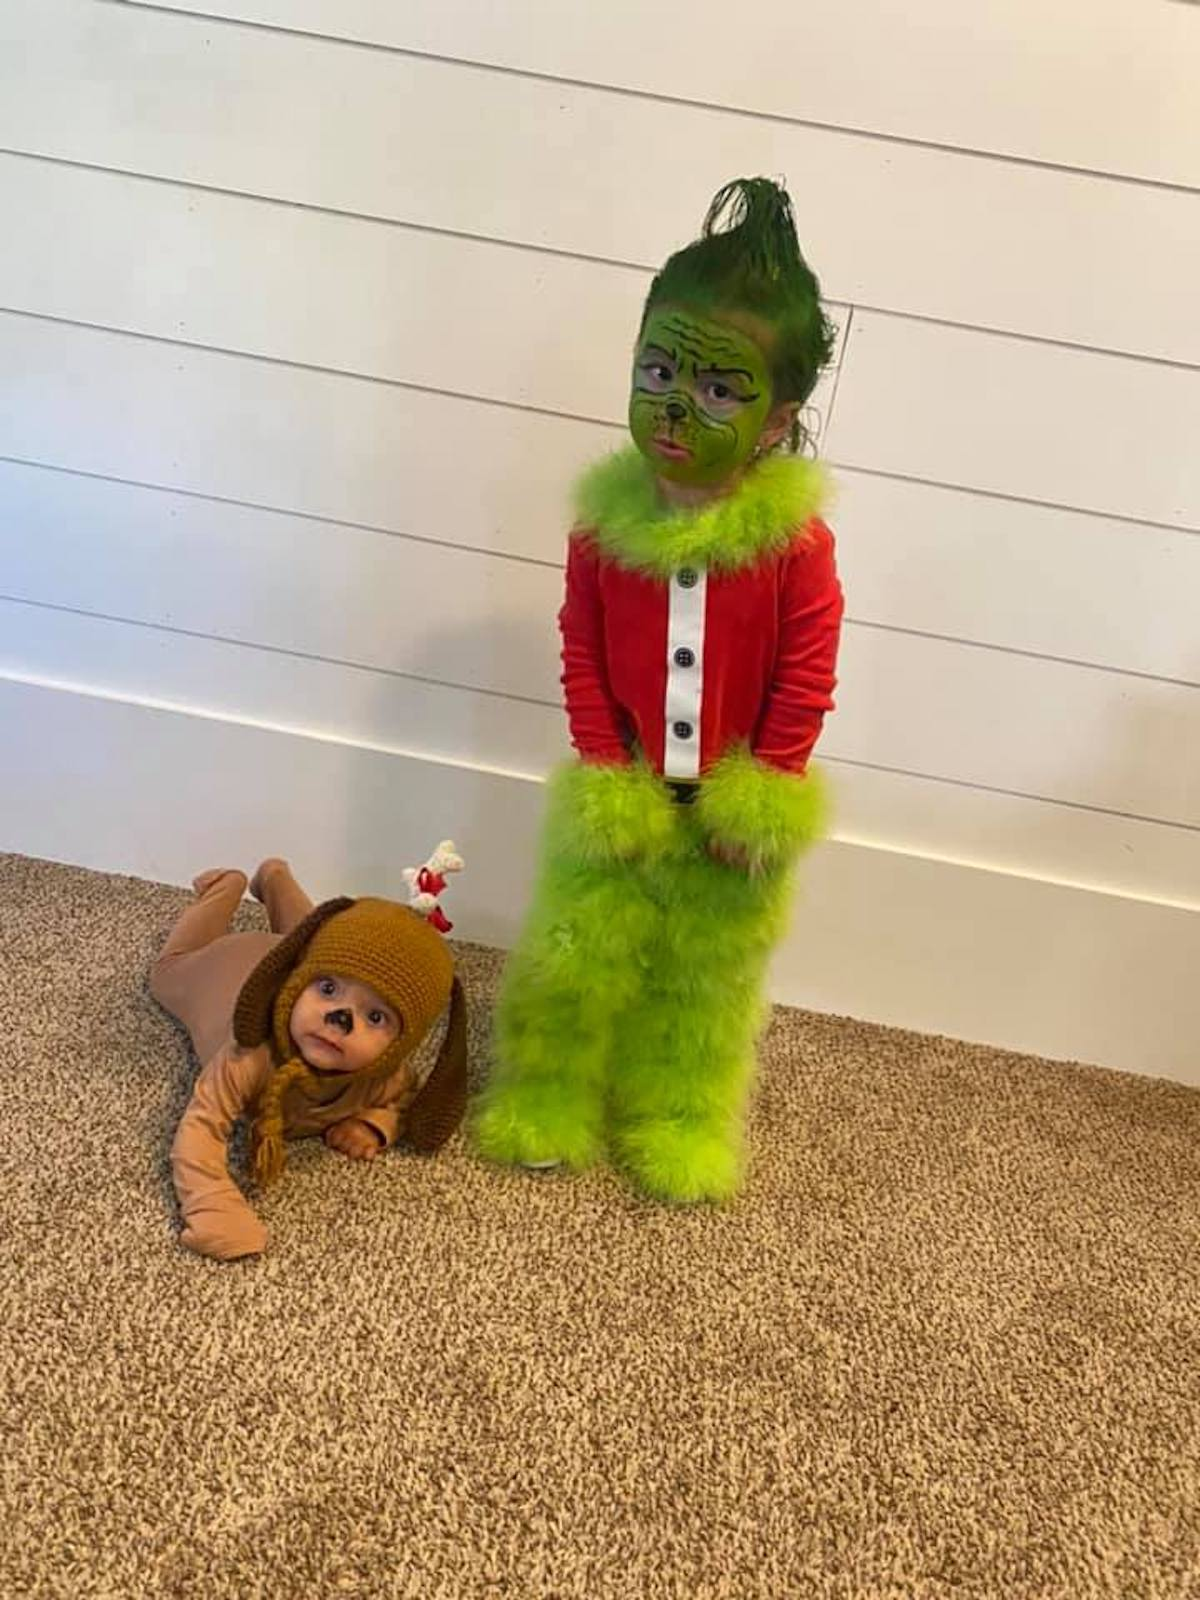 Boy wearing Grinch costume and baby wearing Max costume stand in front of white wall.